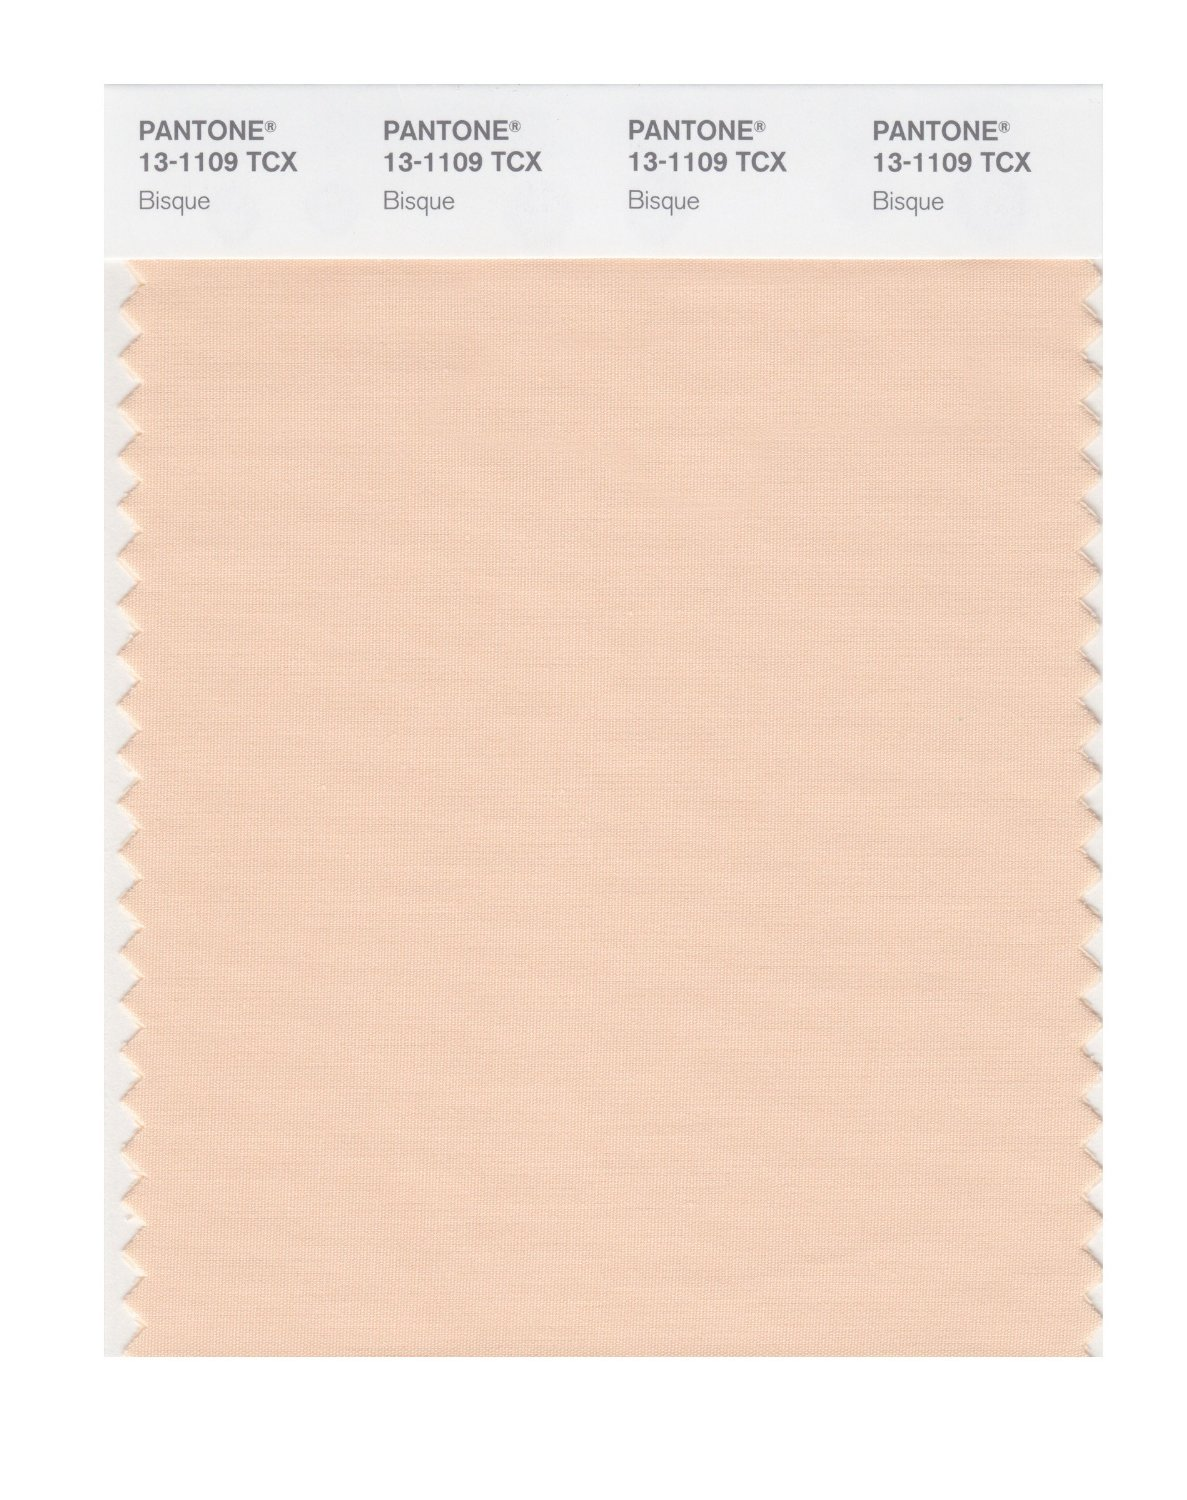 Pantone Smart Swatch 13-1109 Bisque